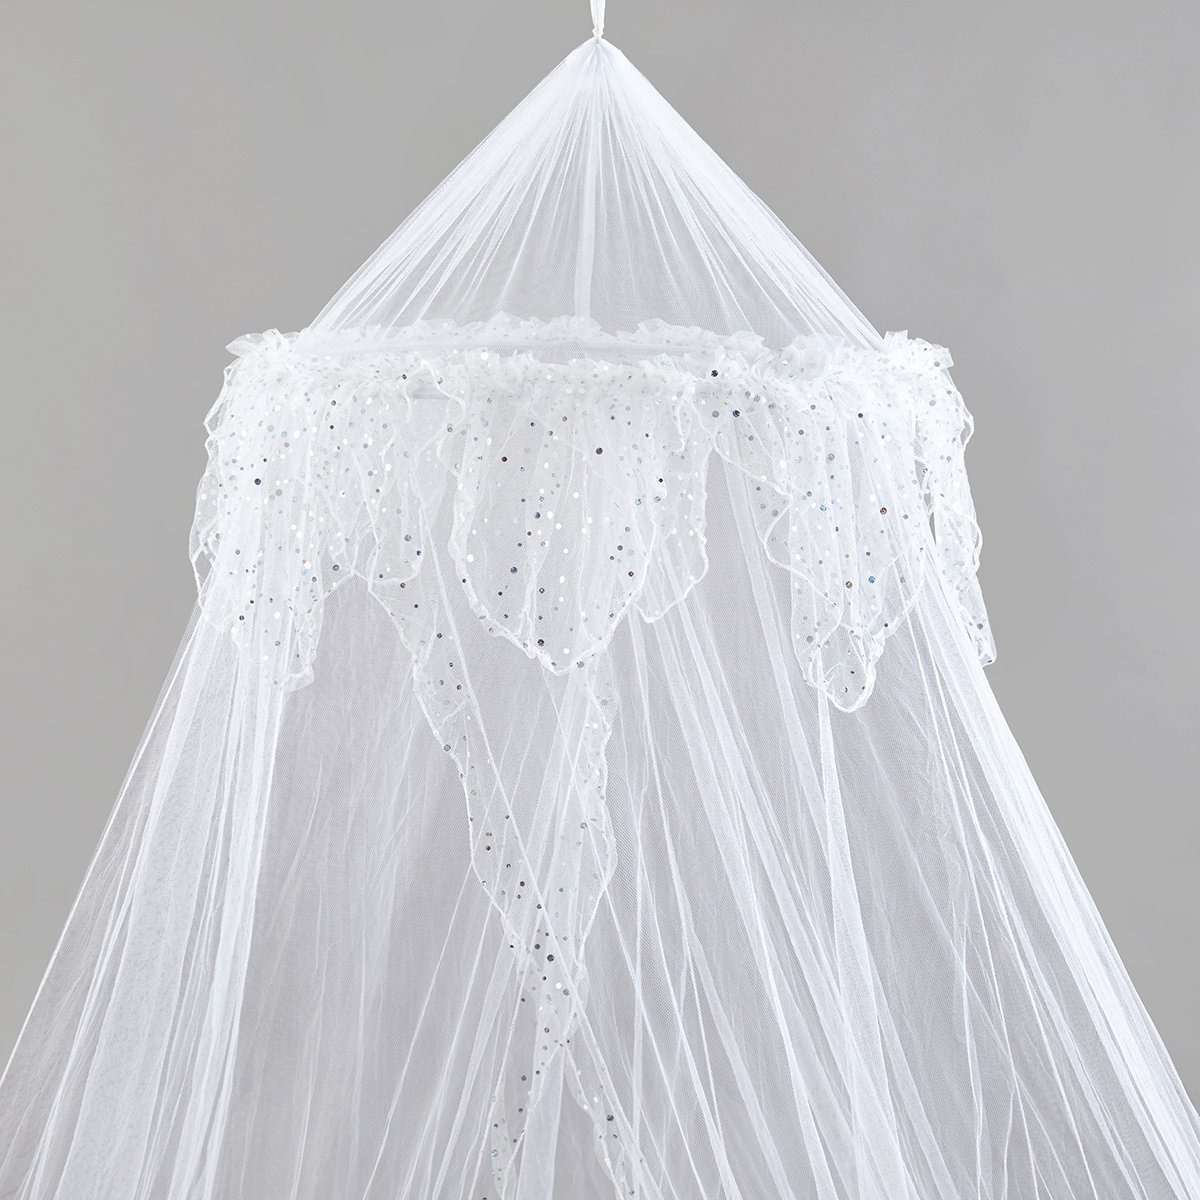 Home and More Store Princess Bed Canopy - Beautiful Silver Sequined Childrens Bed Canopy in White - Single Bed